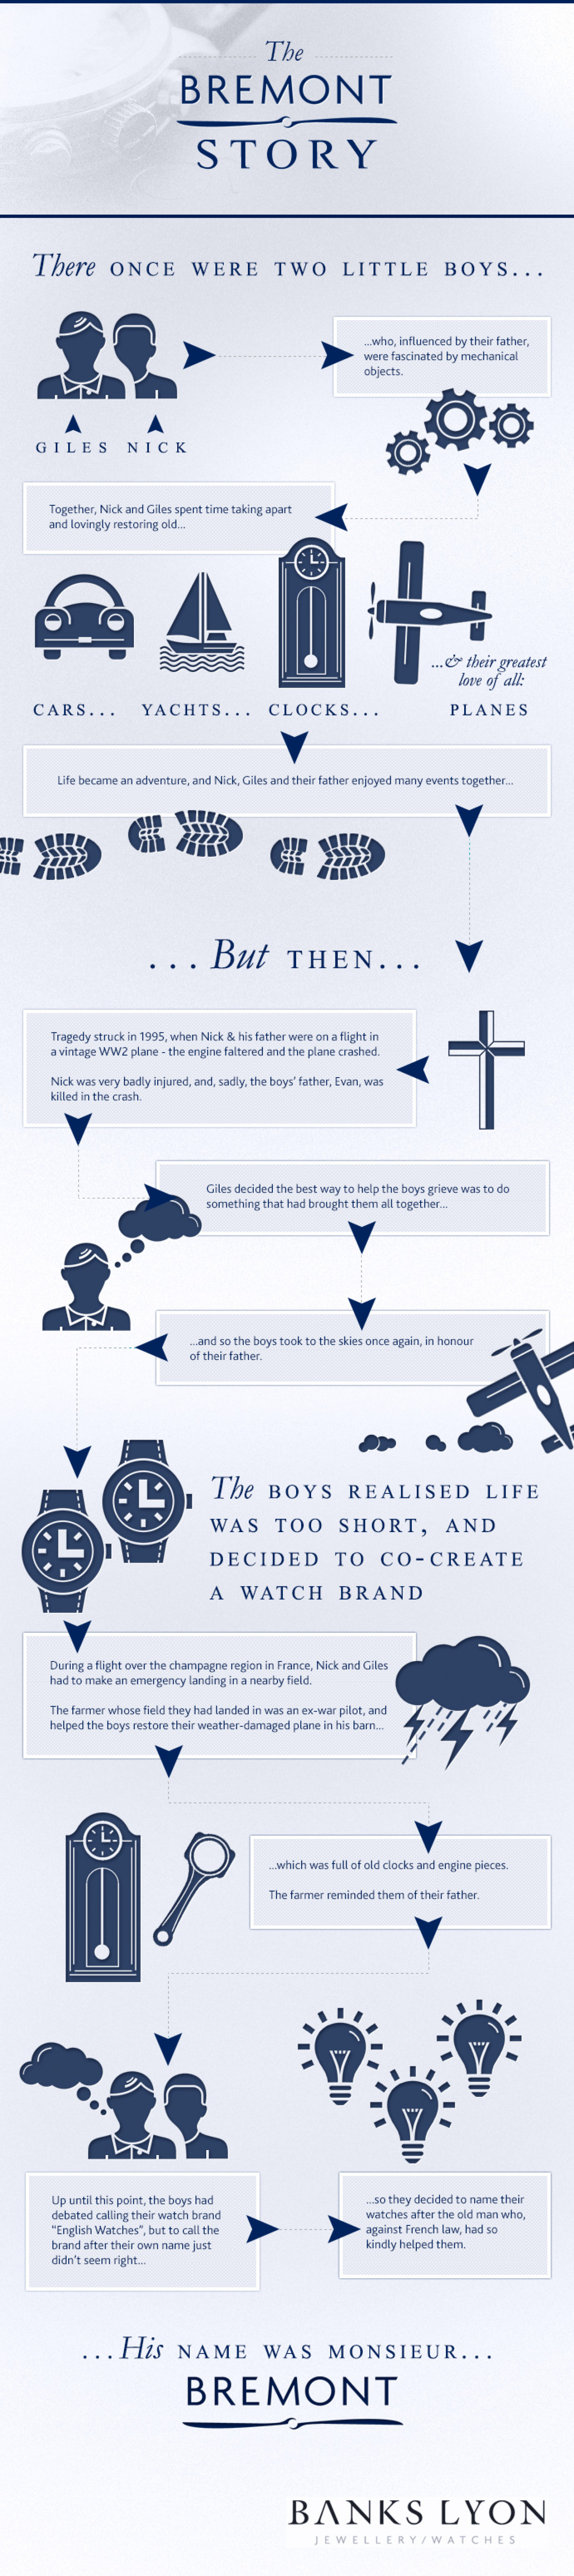 The Bremont Story Infographic